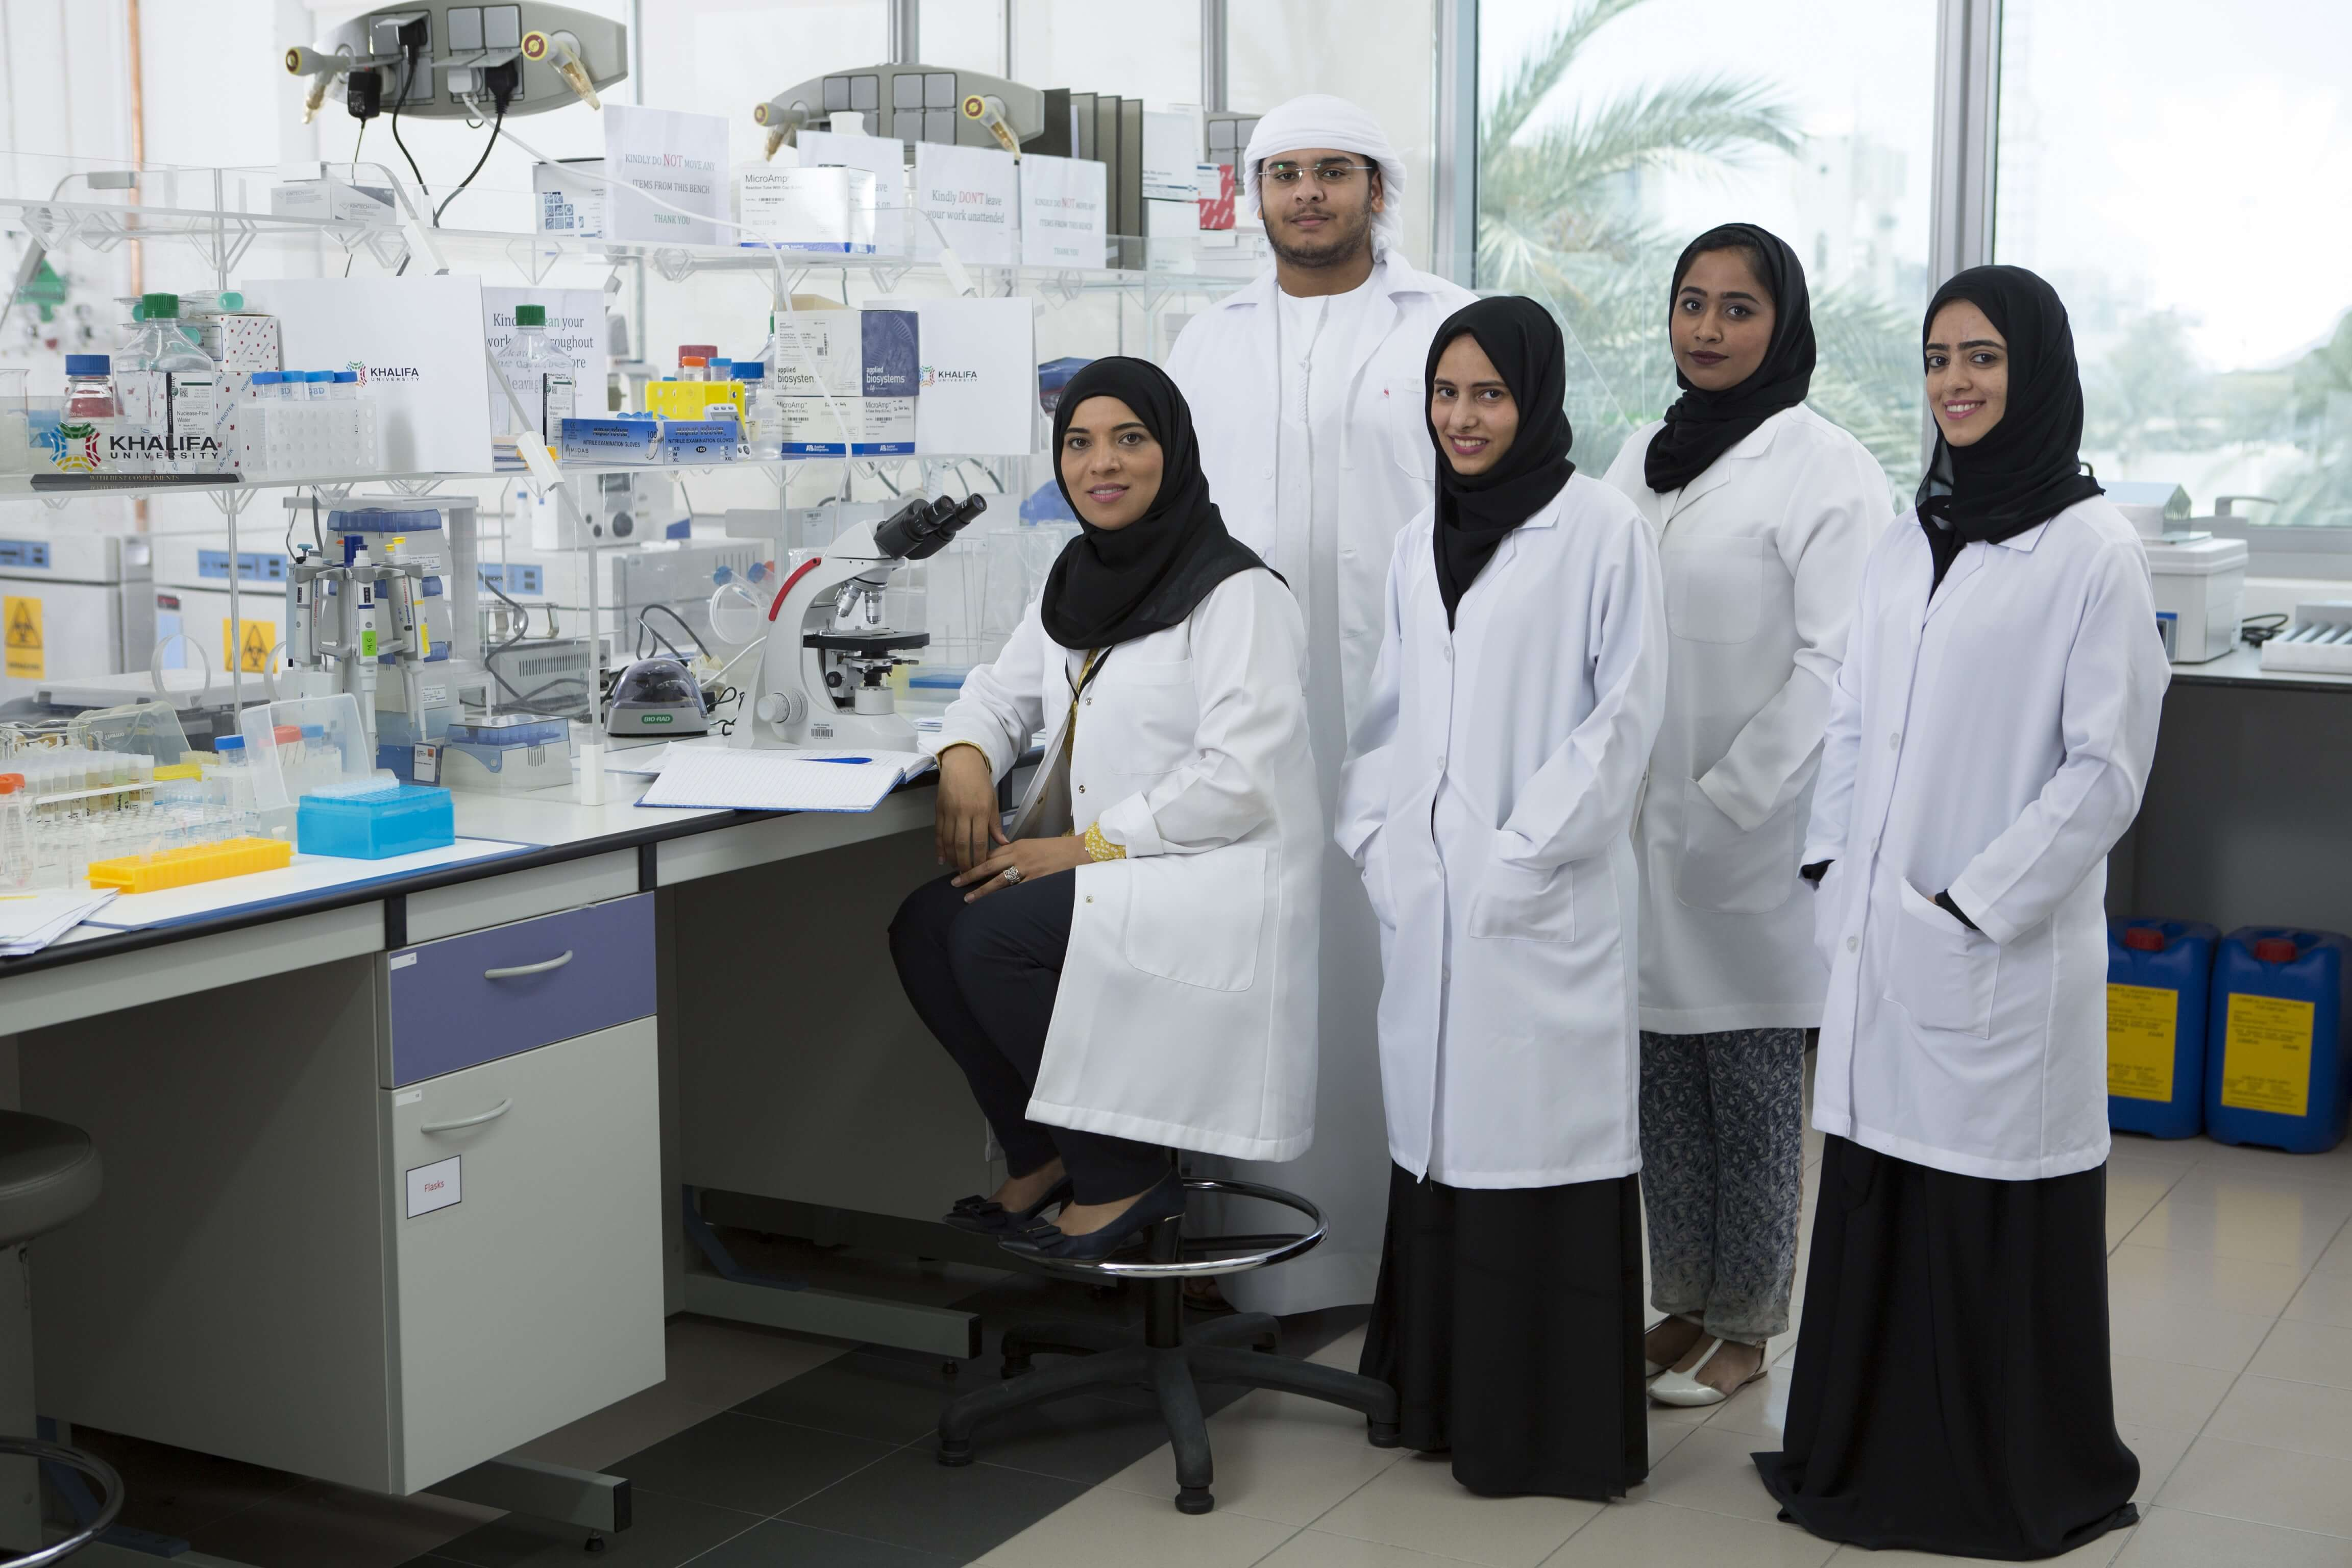 khalifa-university-and-sandooq-al-watan-collaborate-on-biotechnology-project-to-study-genetic-predisposition-to-cancer-in-uae